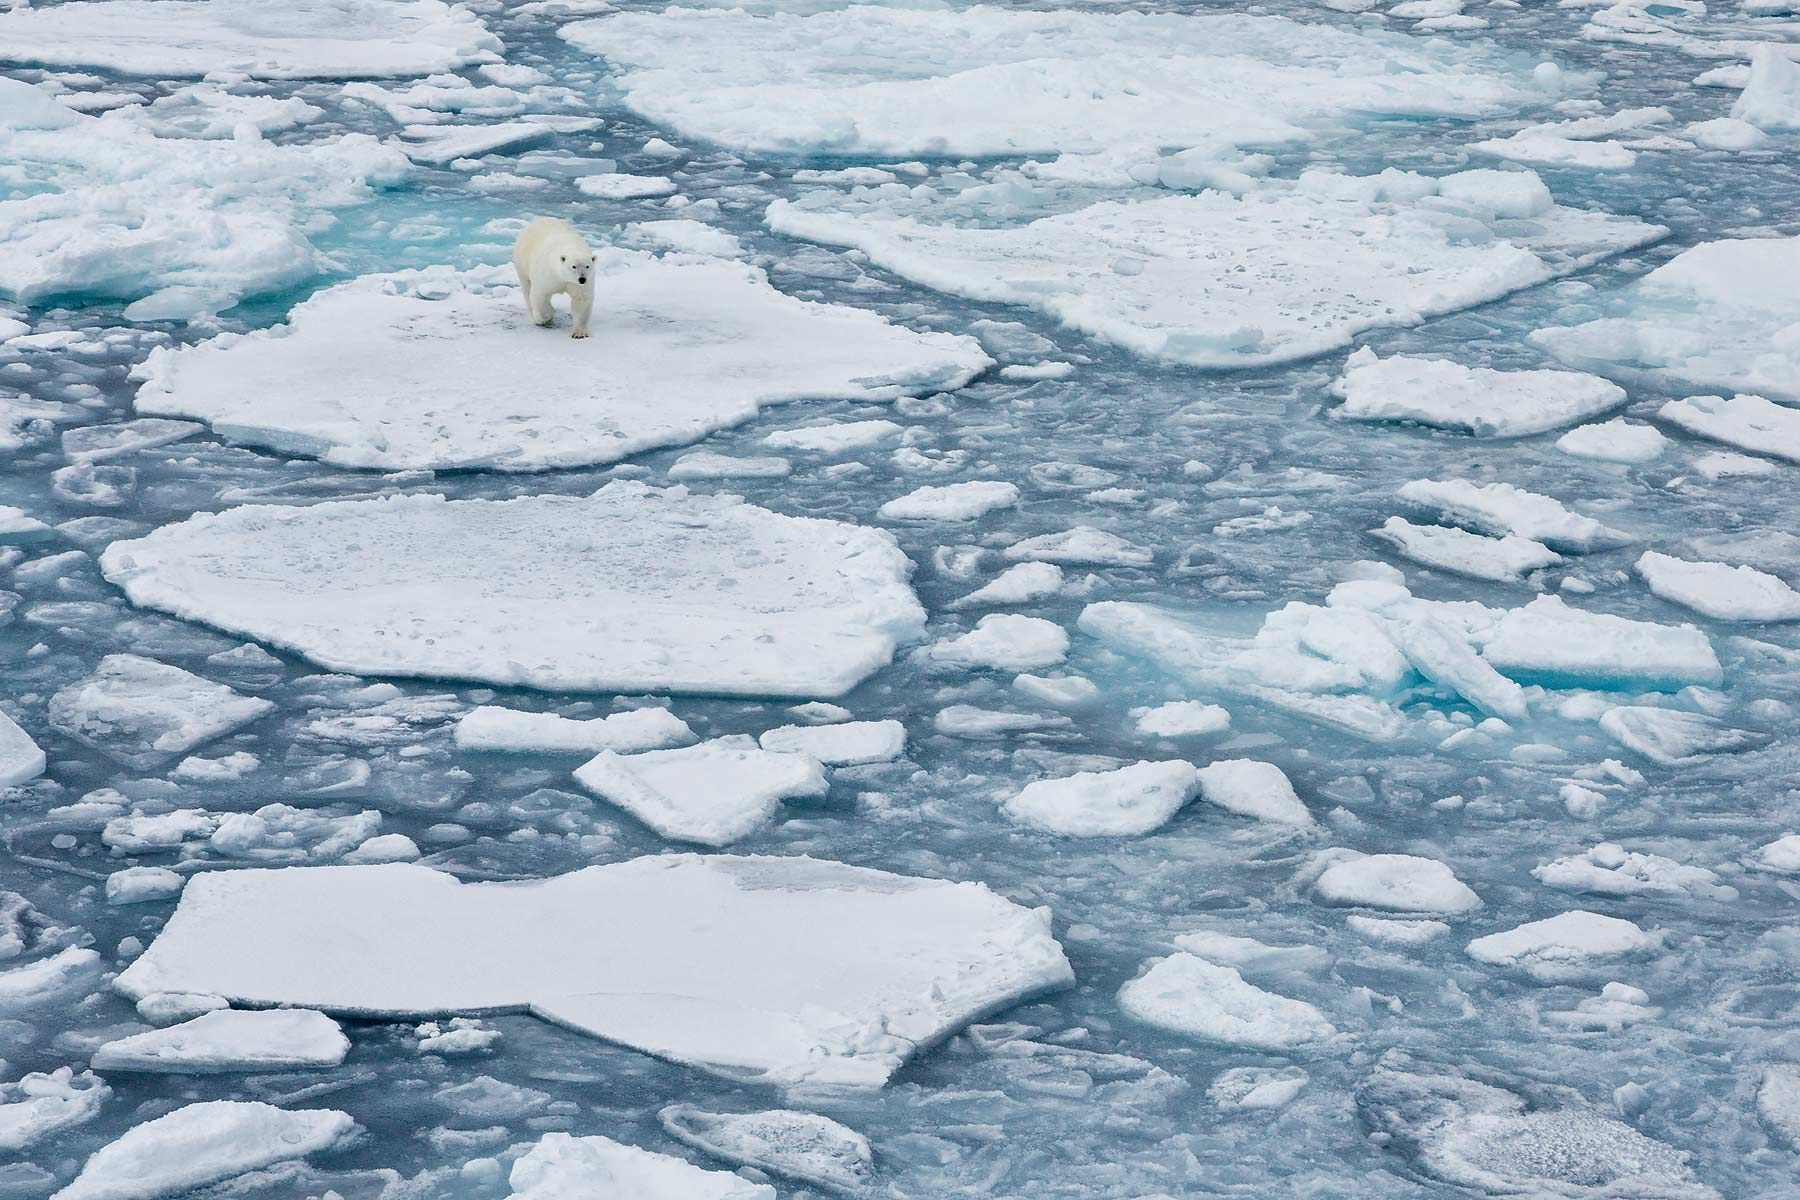 Polar-bear-walking-in-sea-ice-environment_S6A3231-Sea-ice-at-82-degree-North,-Svalbard,-Arctic.jpg